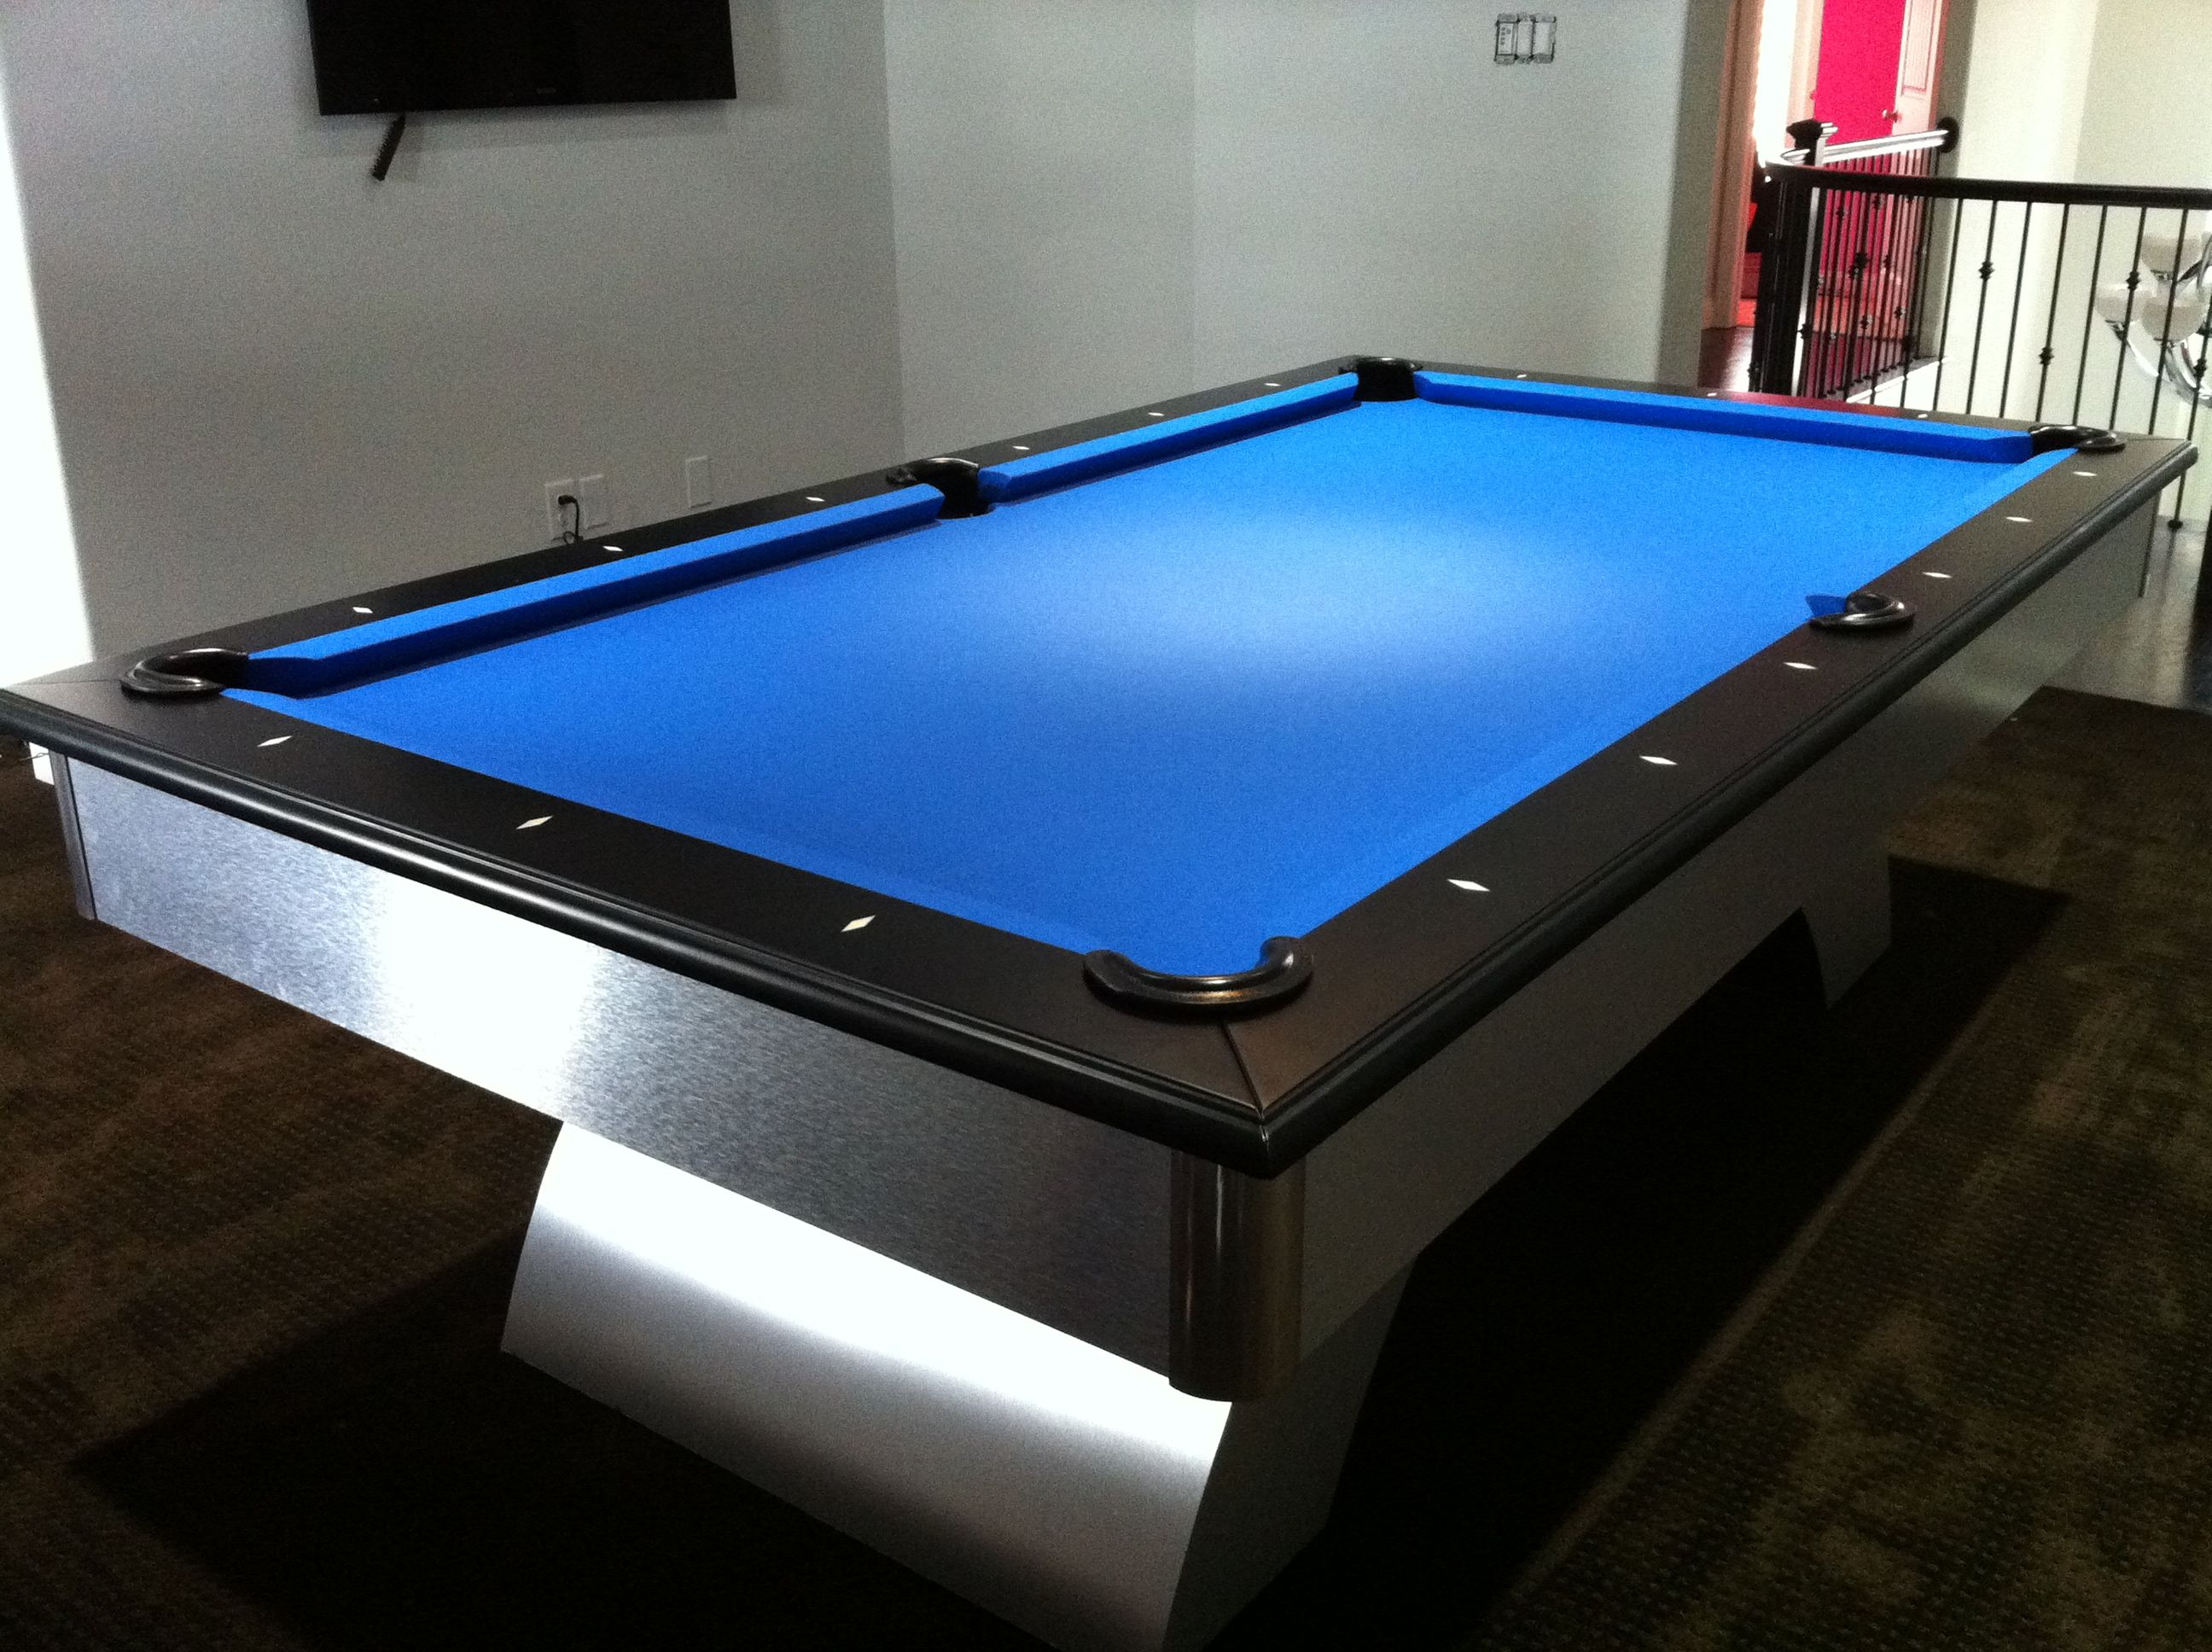 Pool tables 1 inch slate pool tables for sale sears has for 1 inch slate pool table